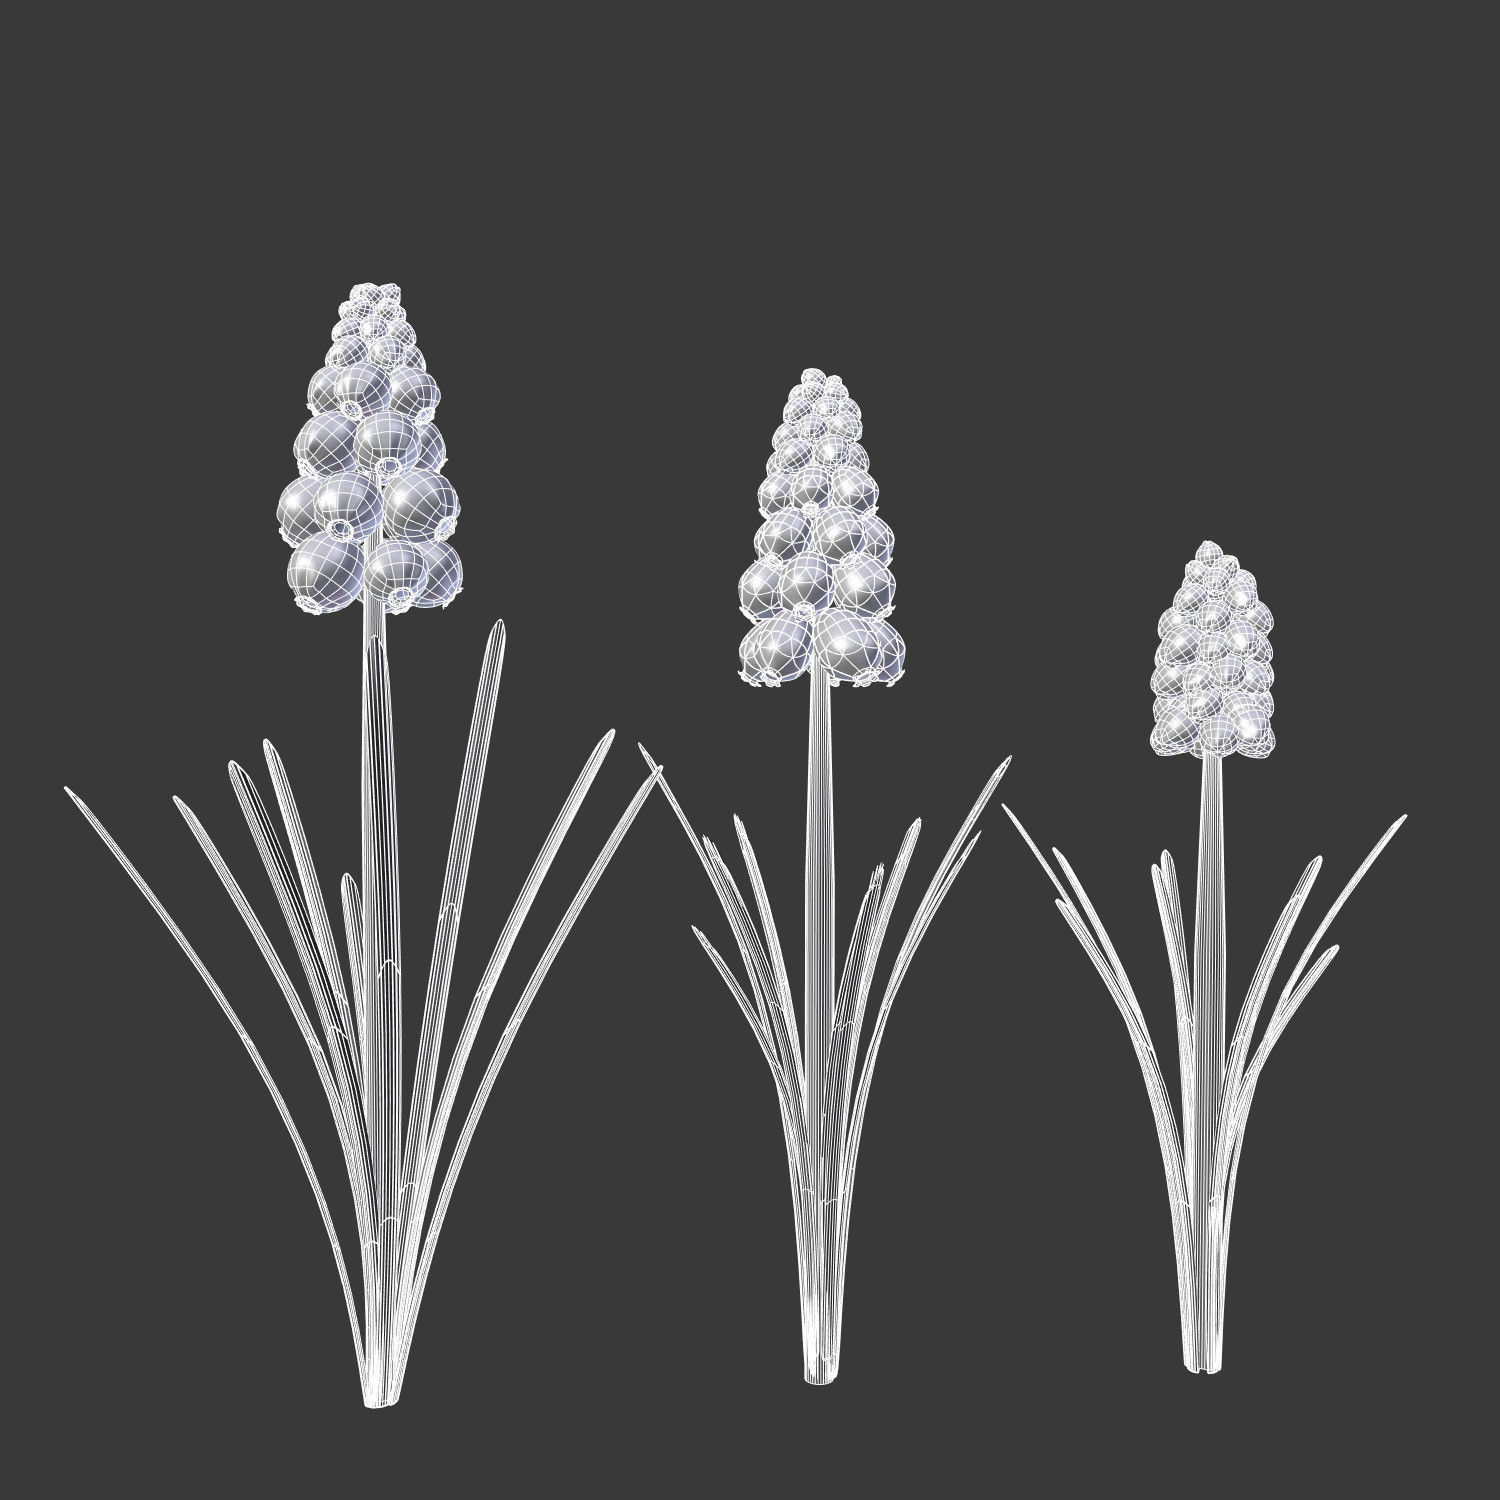 Grape hyacinth spring bulb flowers 3d cgtrader grape hyacinth spring bulb flowers 3d model obj fbx blend mtl 4 mightylinksfo